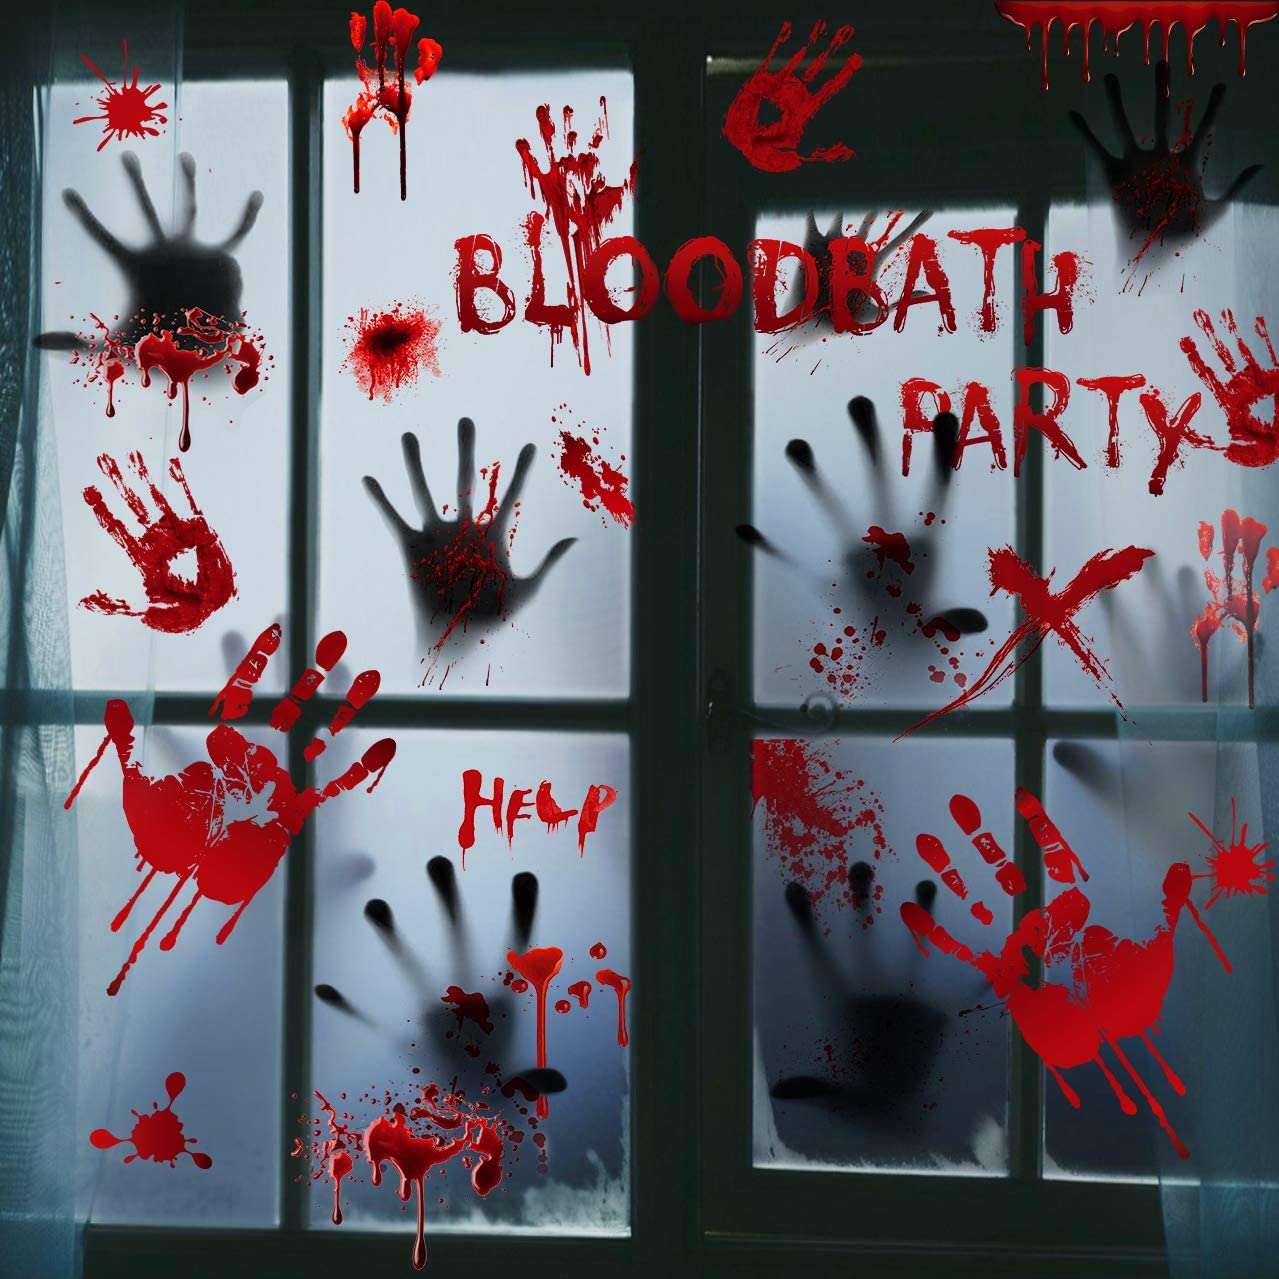 Bloody Handprint Stickers Halloween Decorations - 101PCS Halloween Party Decorations Bloody Window Decals Spooky Wall Floor Clings Horror Bathroom Decor Party Supplies for Haunted House(8 Sheets)